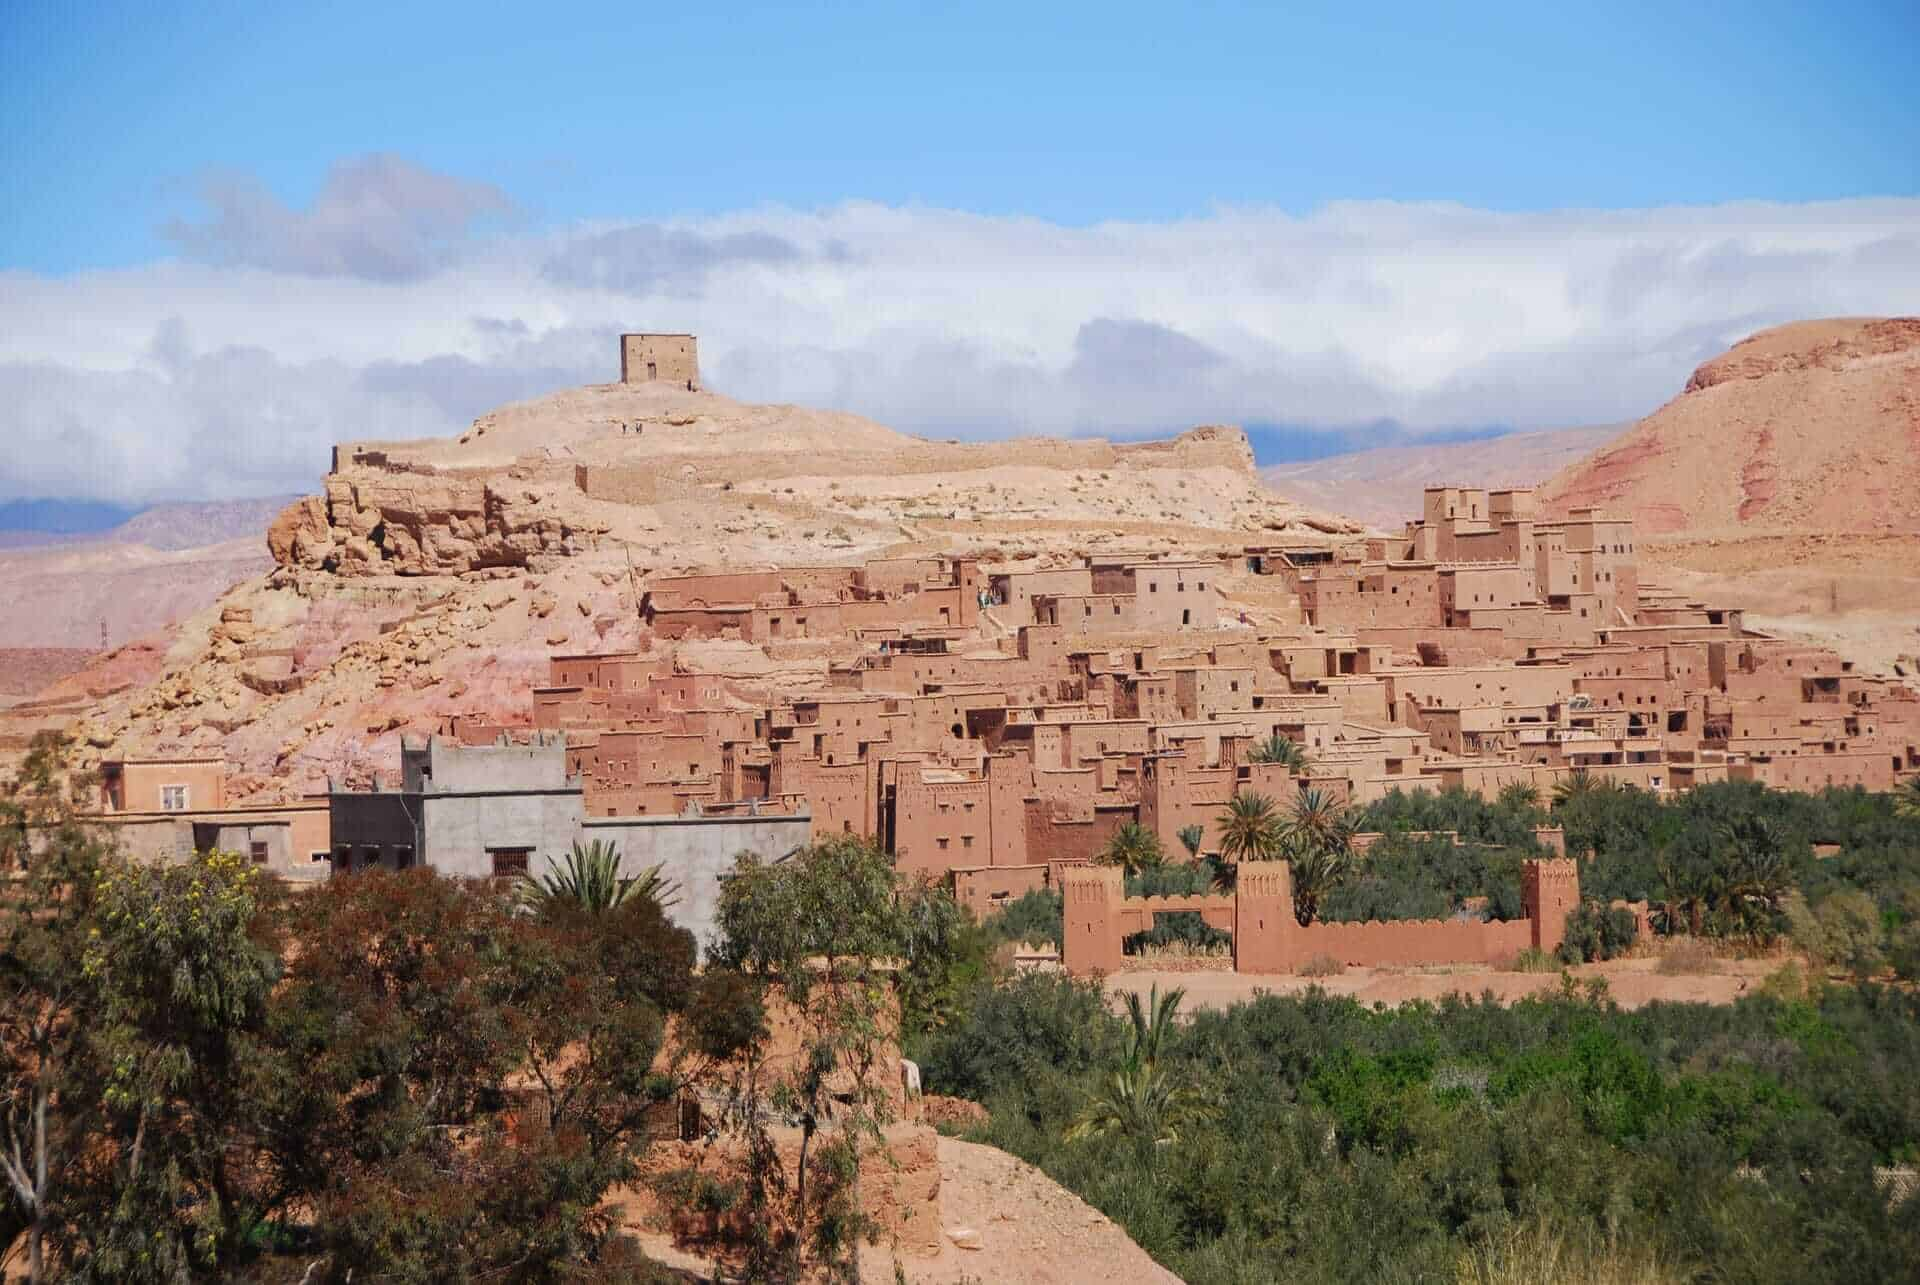 Game of Thrones Locations - Ouarzazate in Morocco